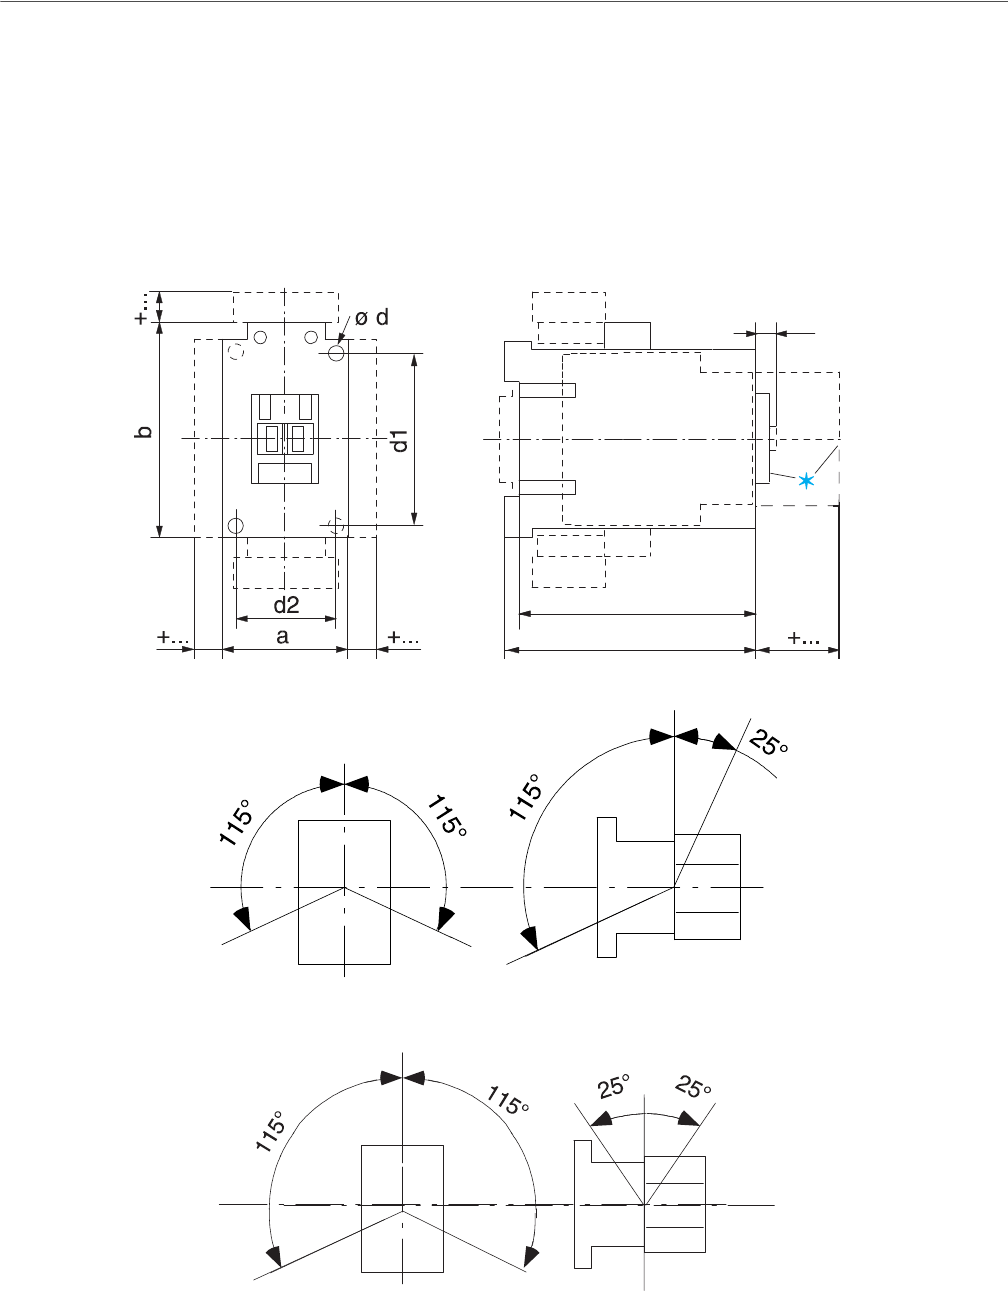 allen bradley 100 d140 contactor wiring diagram heart chambers and valves iec specifications td td013 en p rockwell automation publication td013f november 2017 61